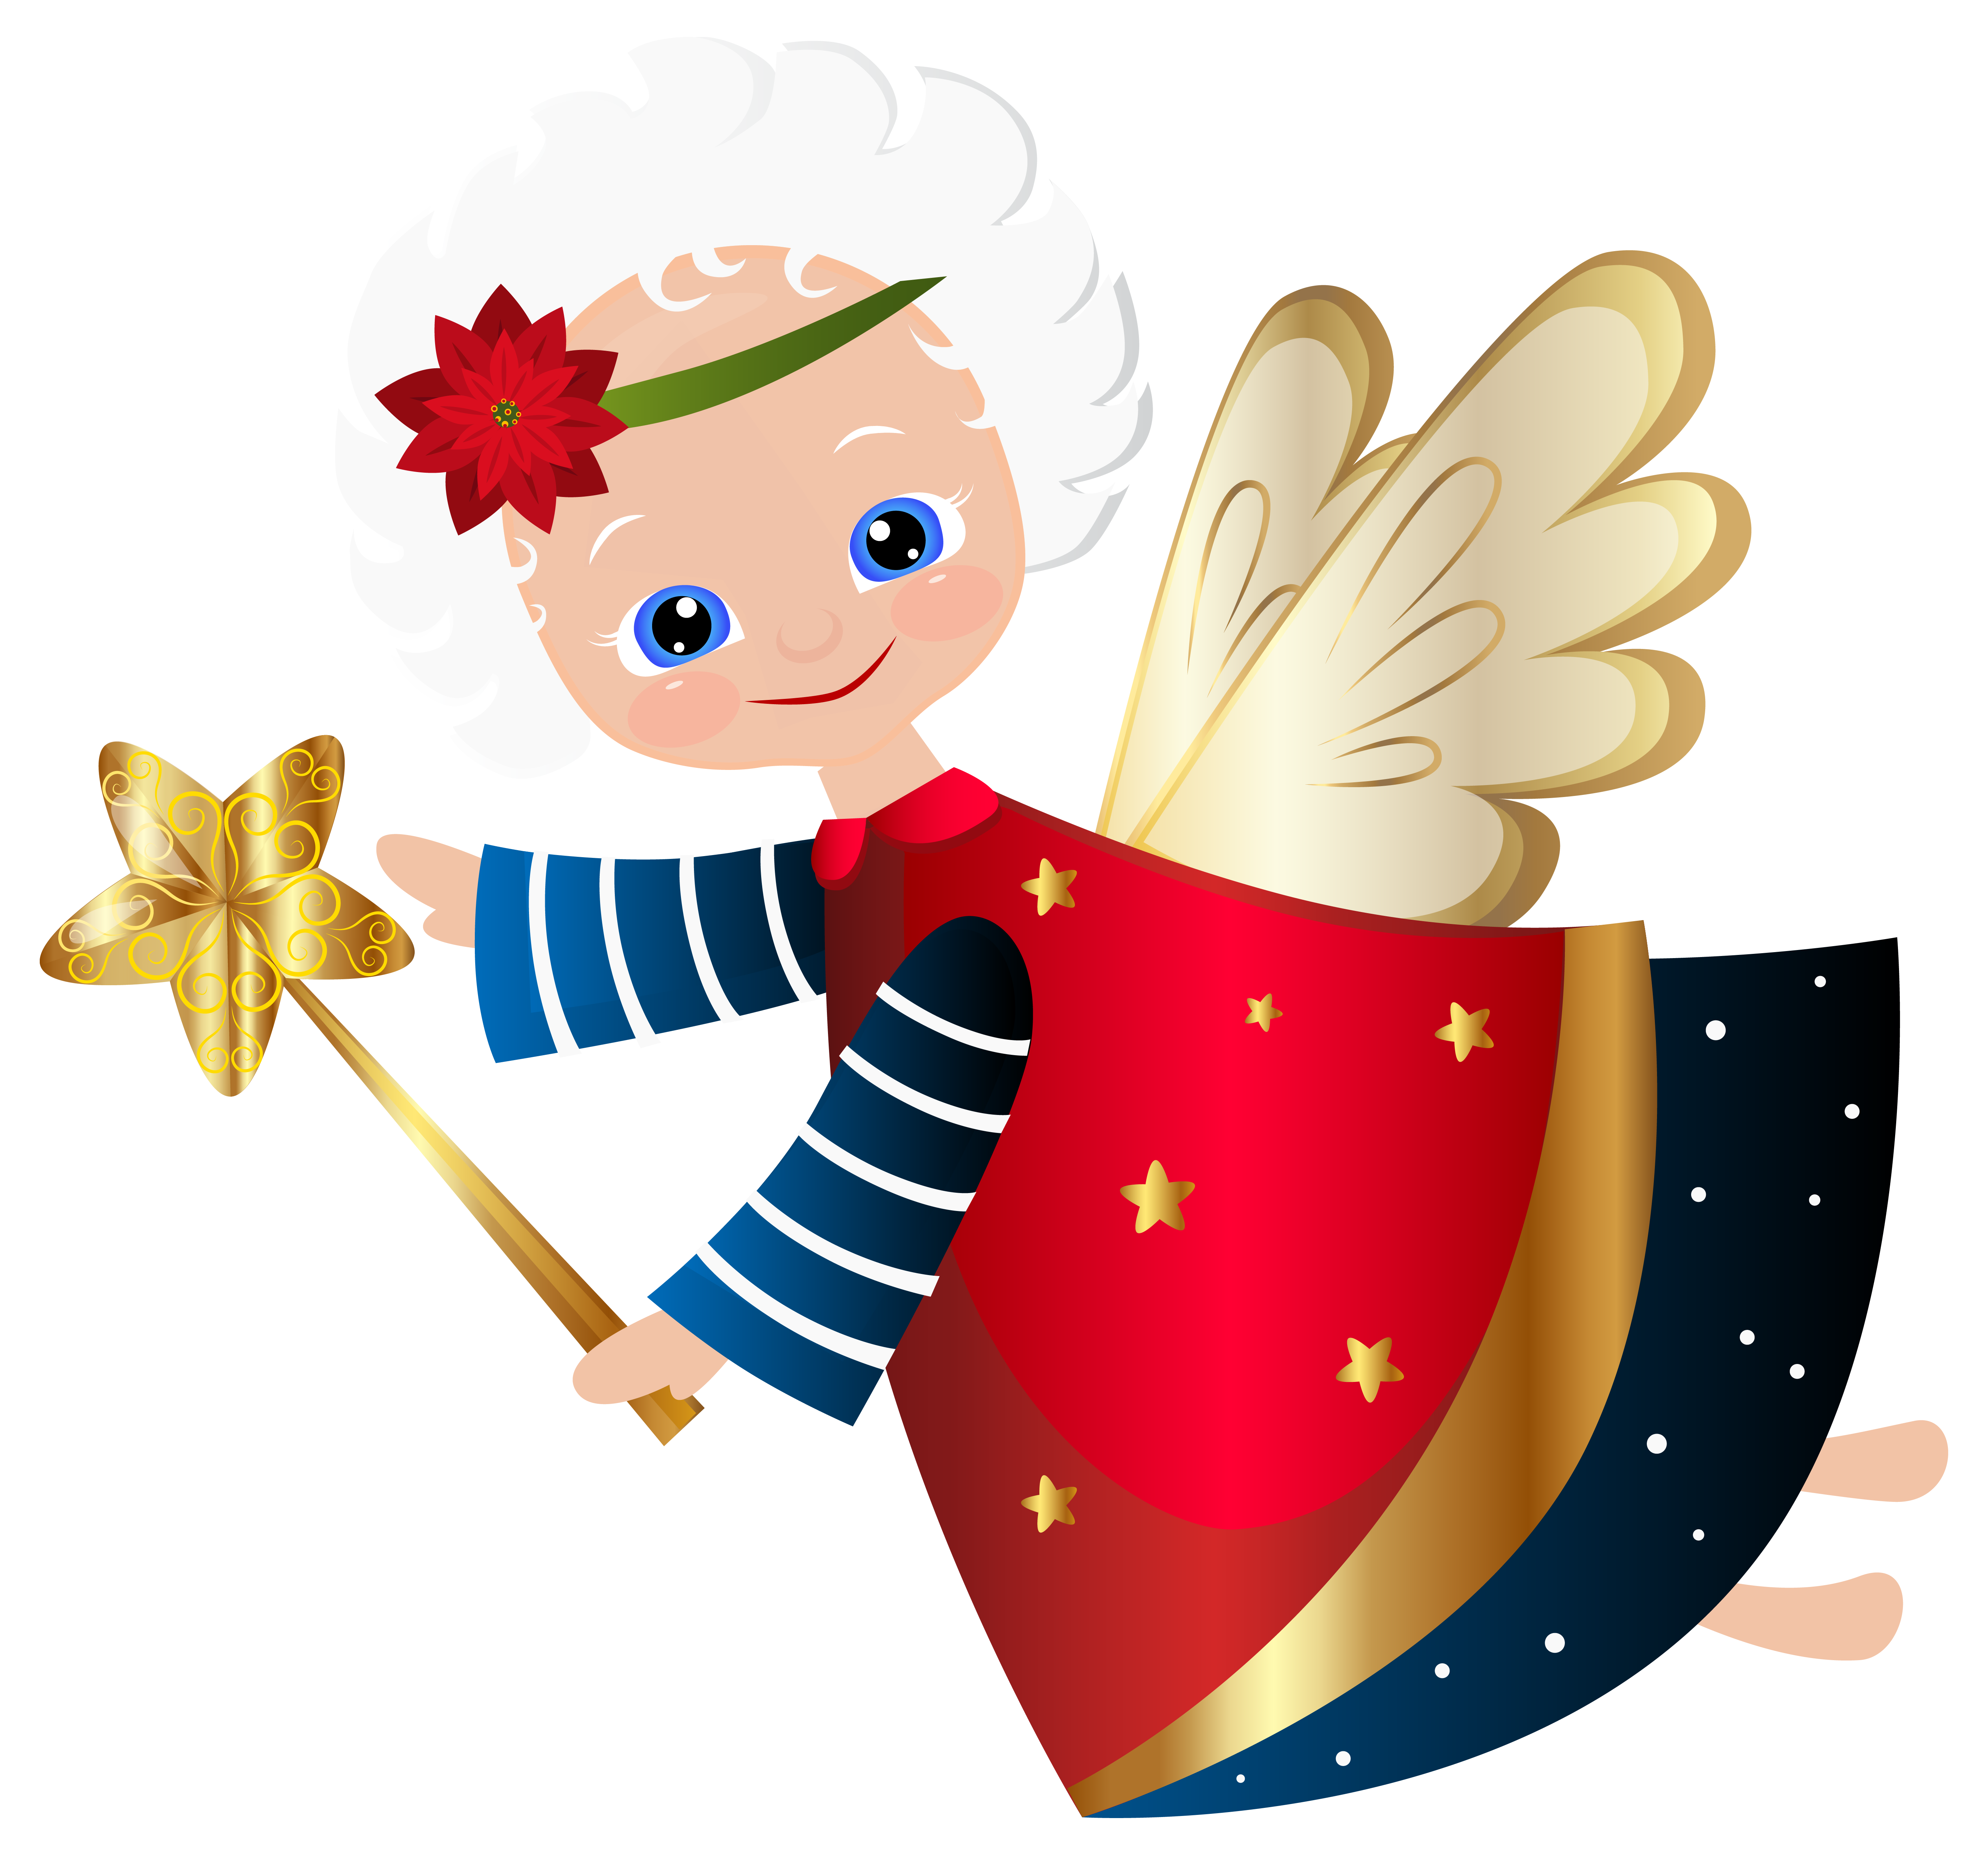 Christmas angel tree clipart svg black and white library Cute Christmas Angel Transparent PNG Clip Art Image | Клипарты ... svg black and white library